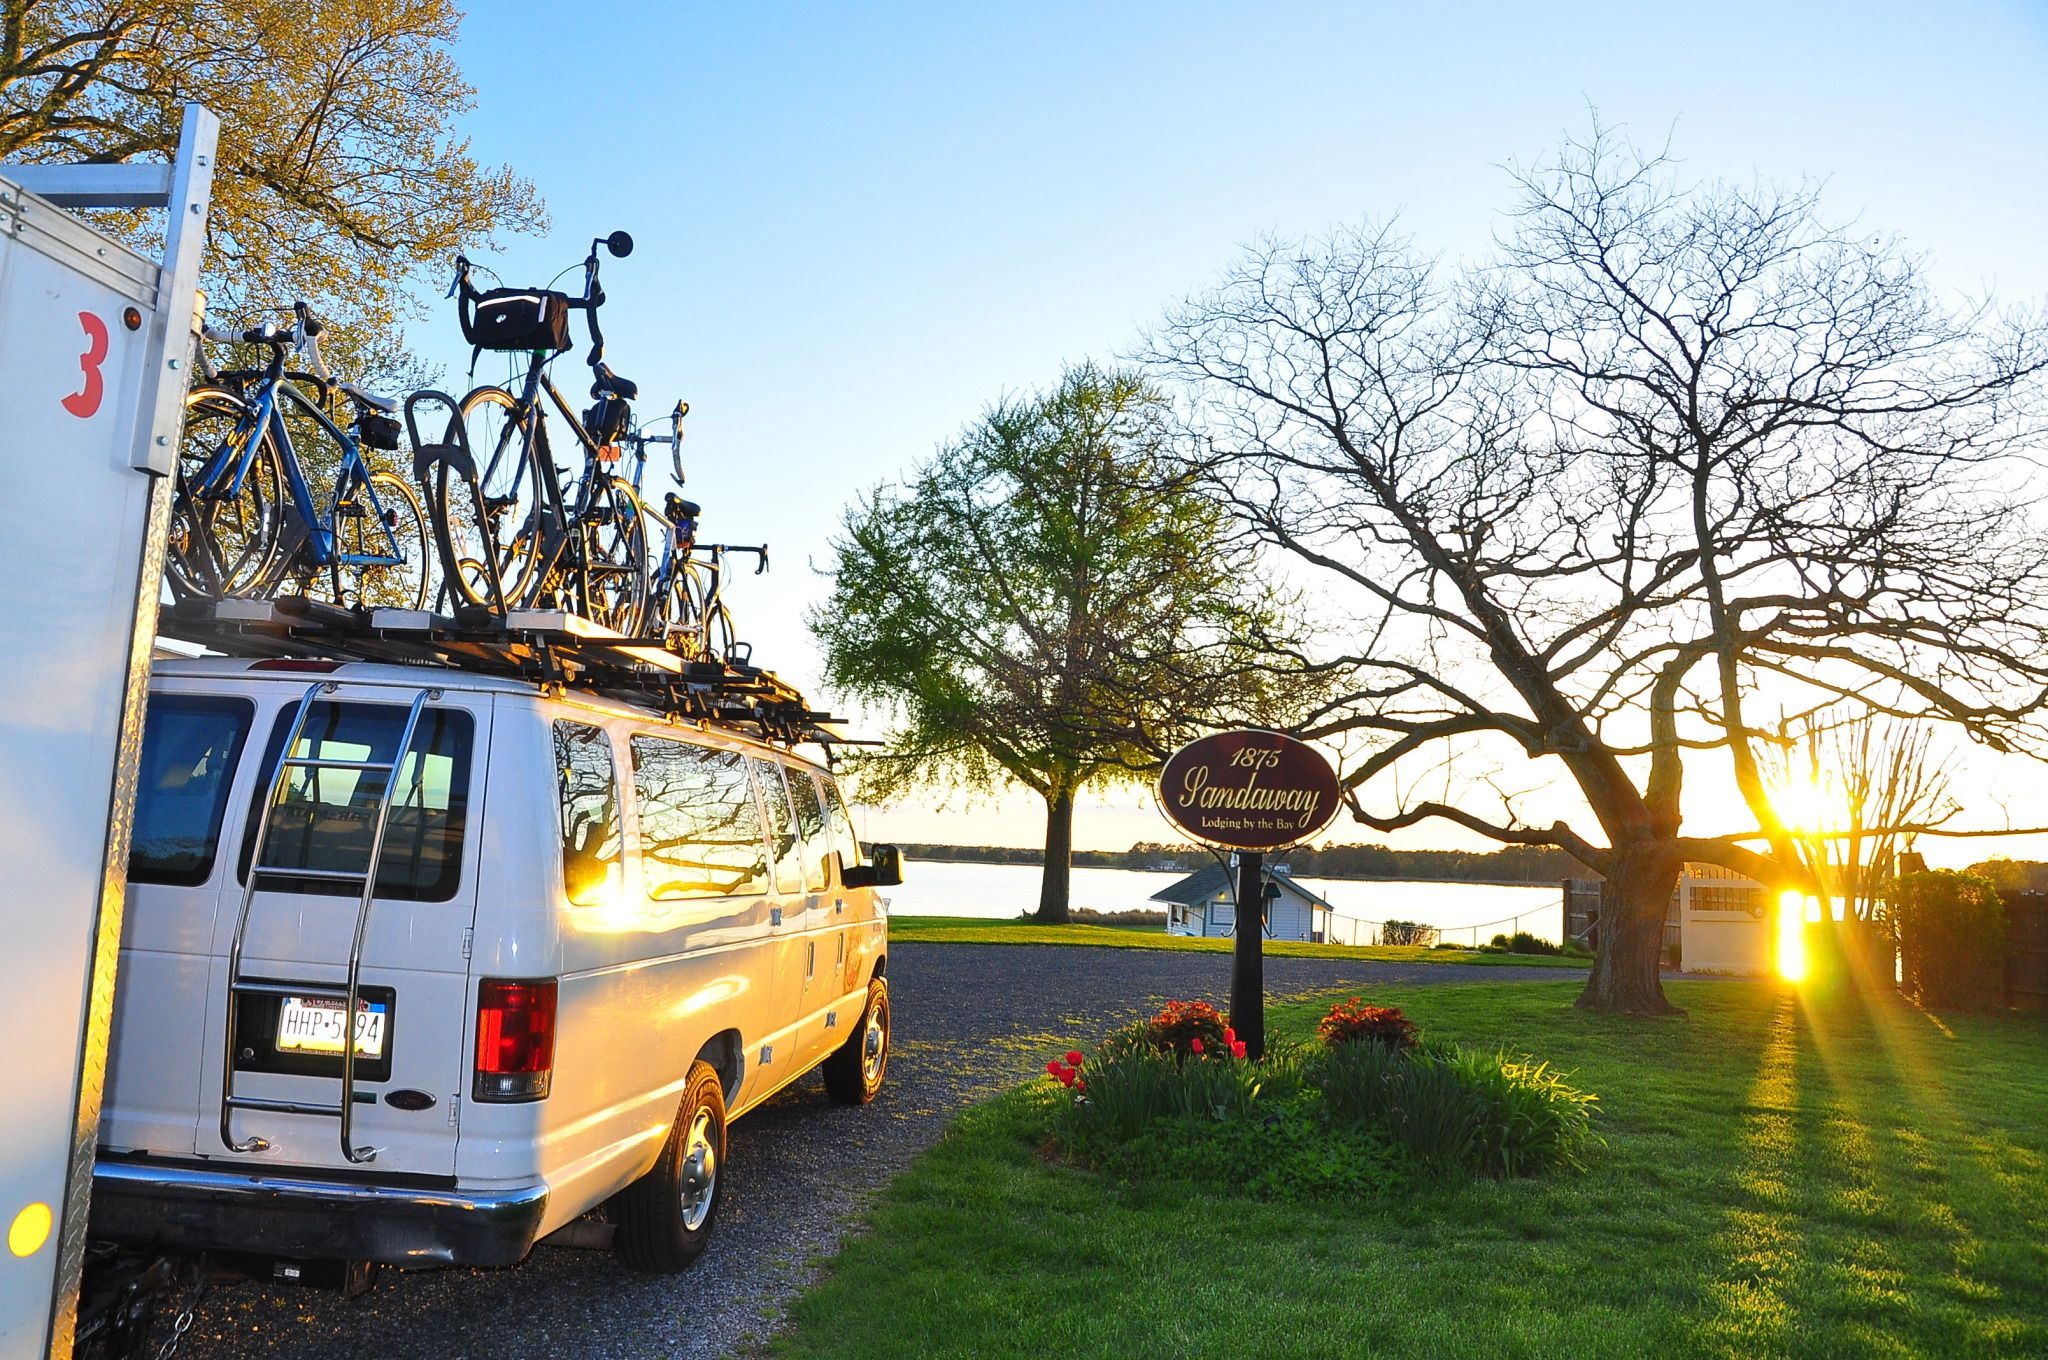 Our bike tour rig outside the Sandaway Lodge on the Chesapeake Bay Bike Tour, waiting for guests to finish their breakfast!